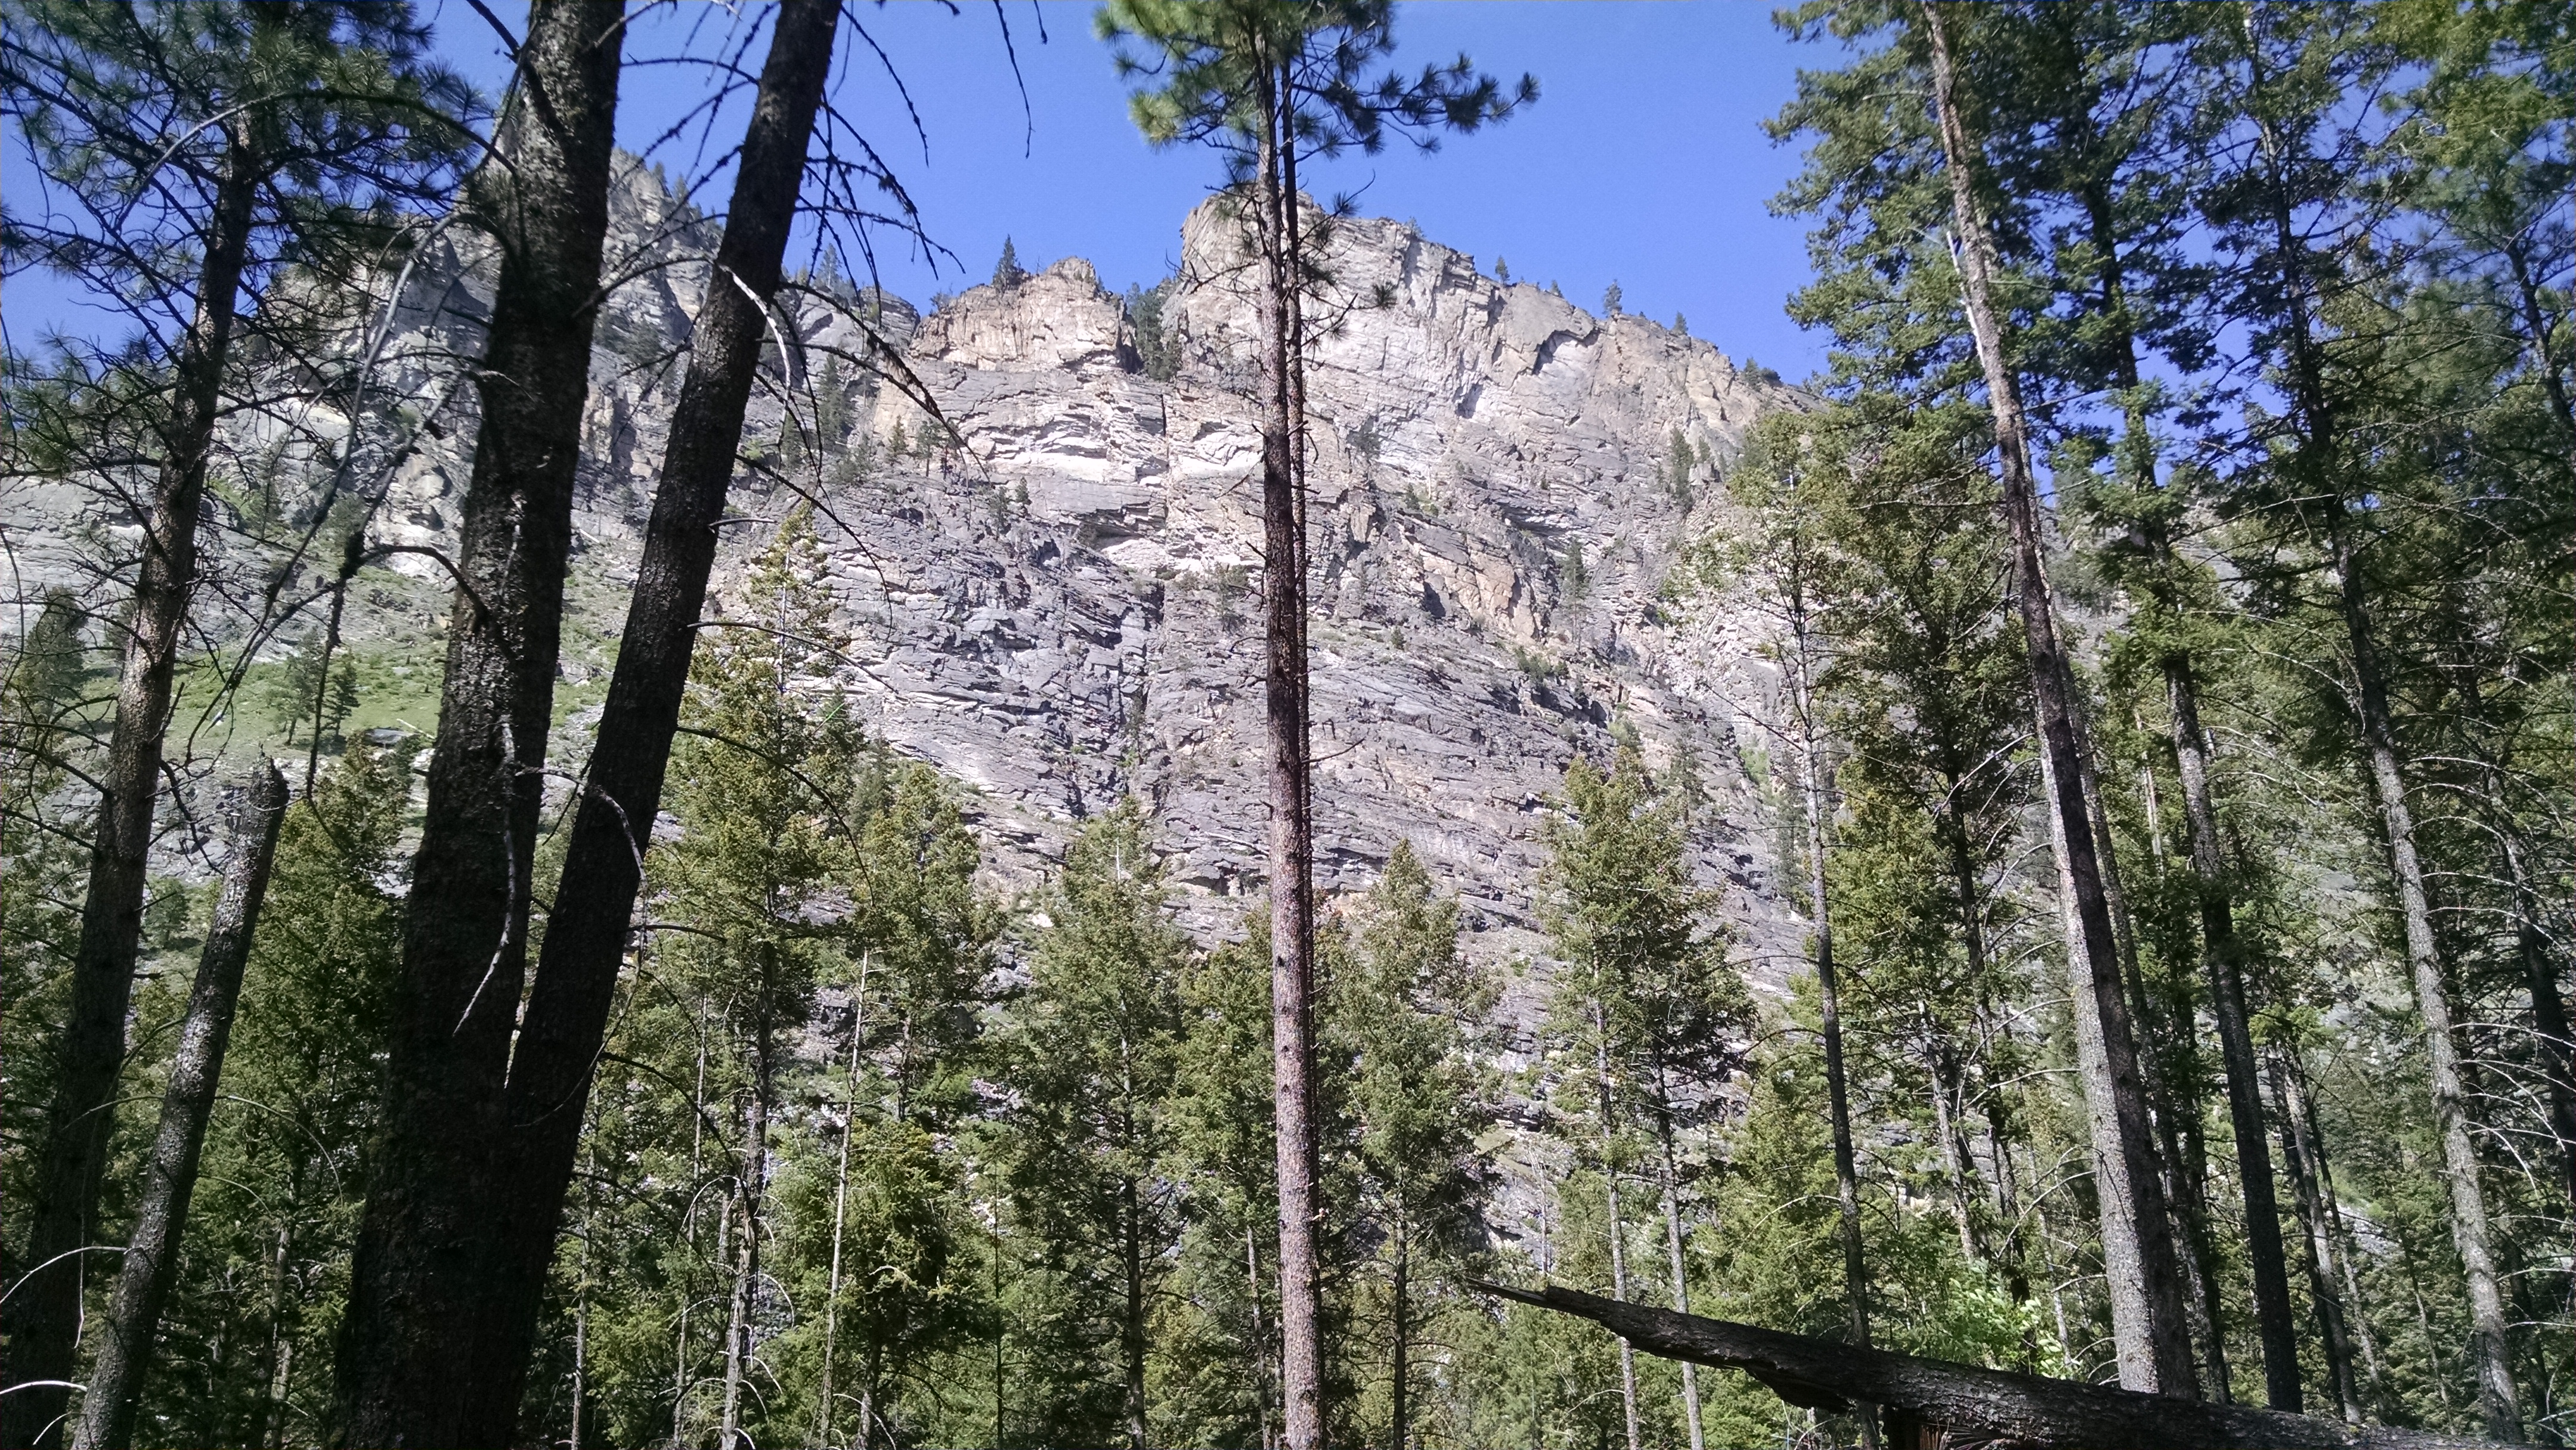 Cliff face with Ponderosa pines in the foreground.  Blodgett Canyon, Montana.  (Photo: Theresa Duncan)